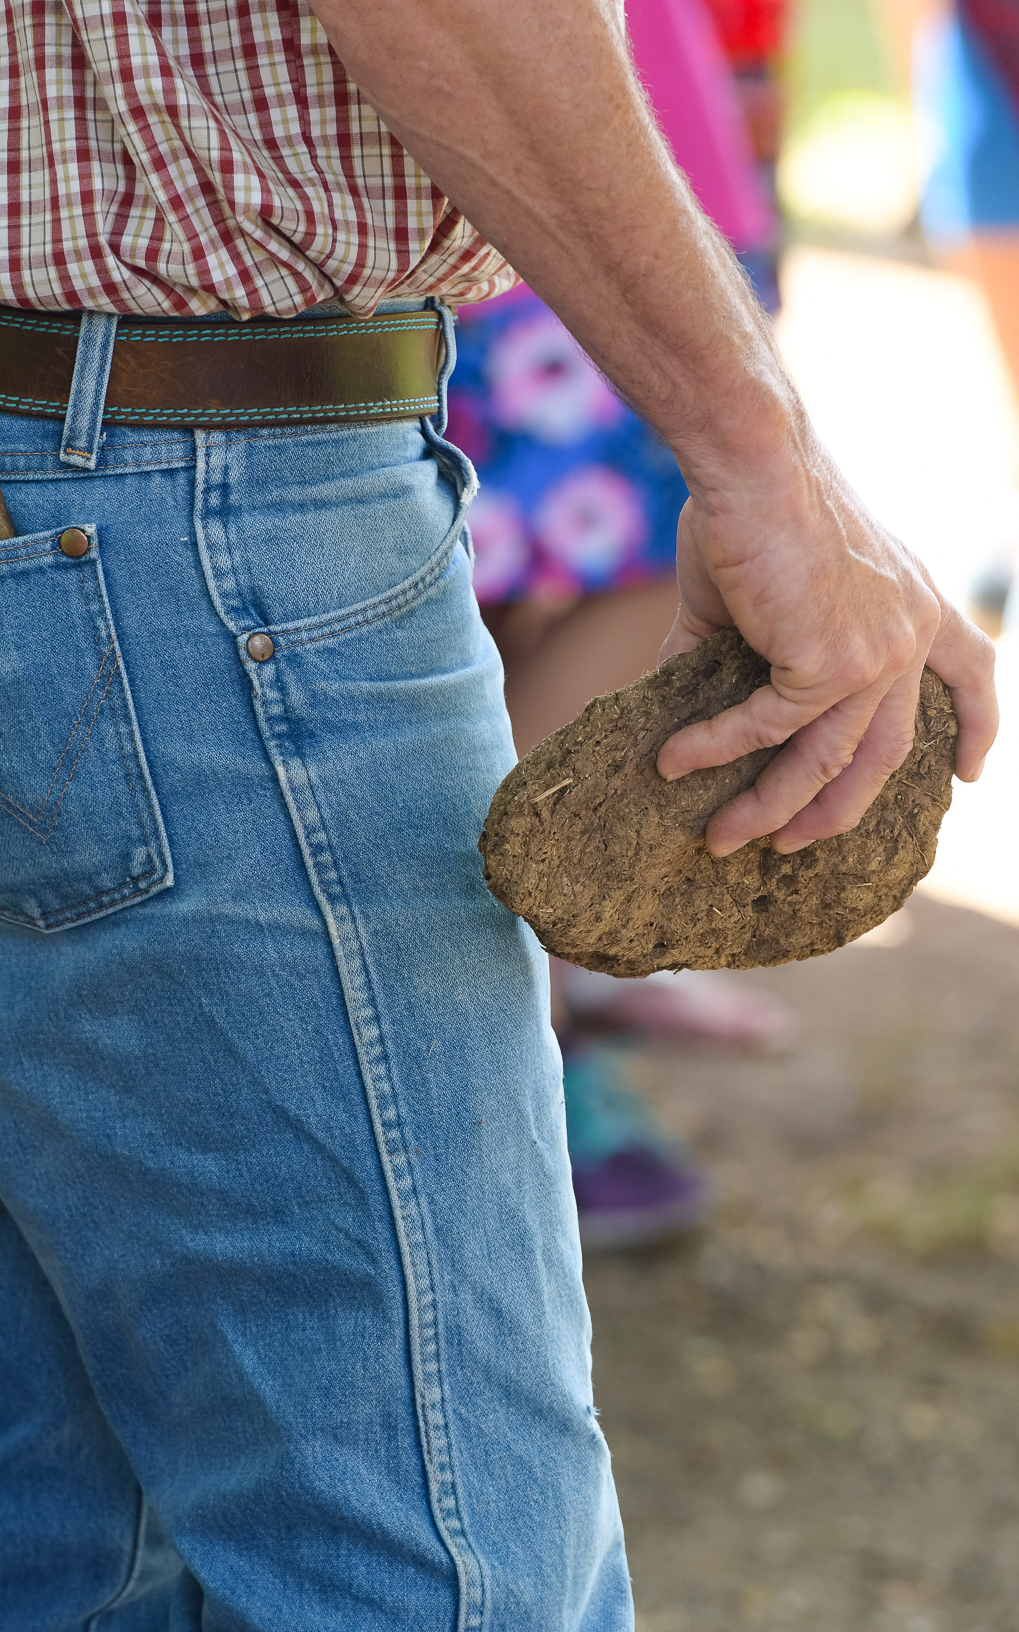 A contestant holds a cow chip while watching others compete in the Cow Chip Throwing Contest at the Iowa State Fair. Photo credit: Joseph L. Murphy/Iowa Soybean Association